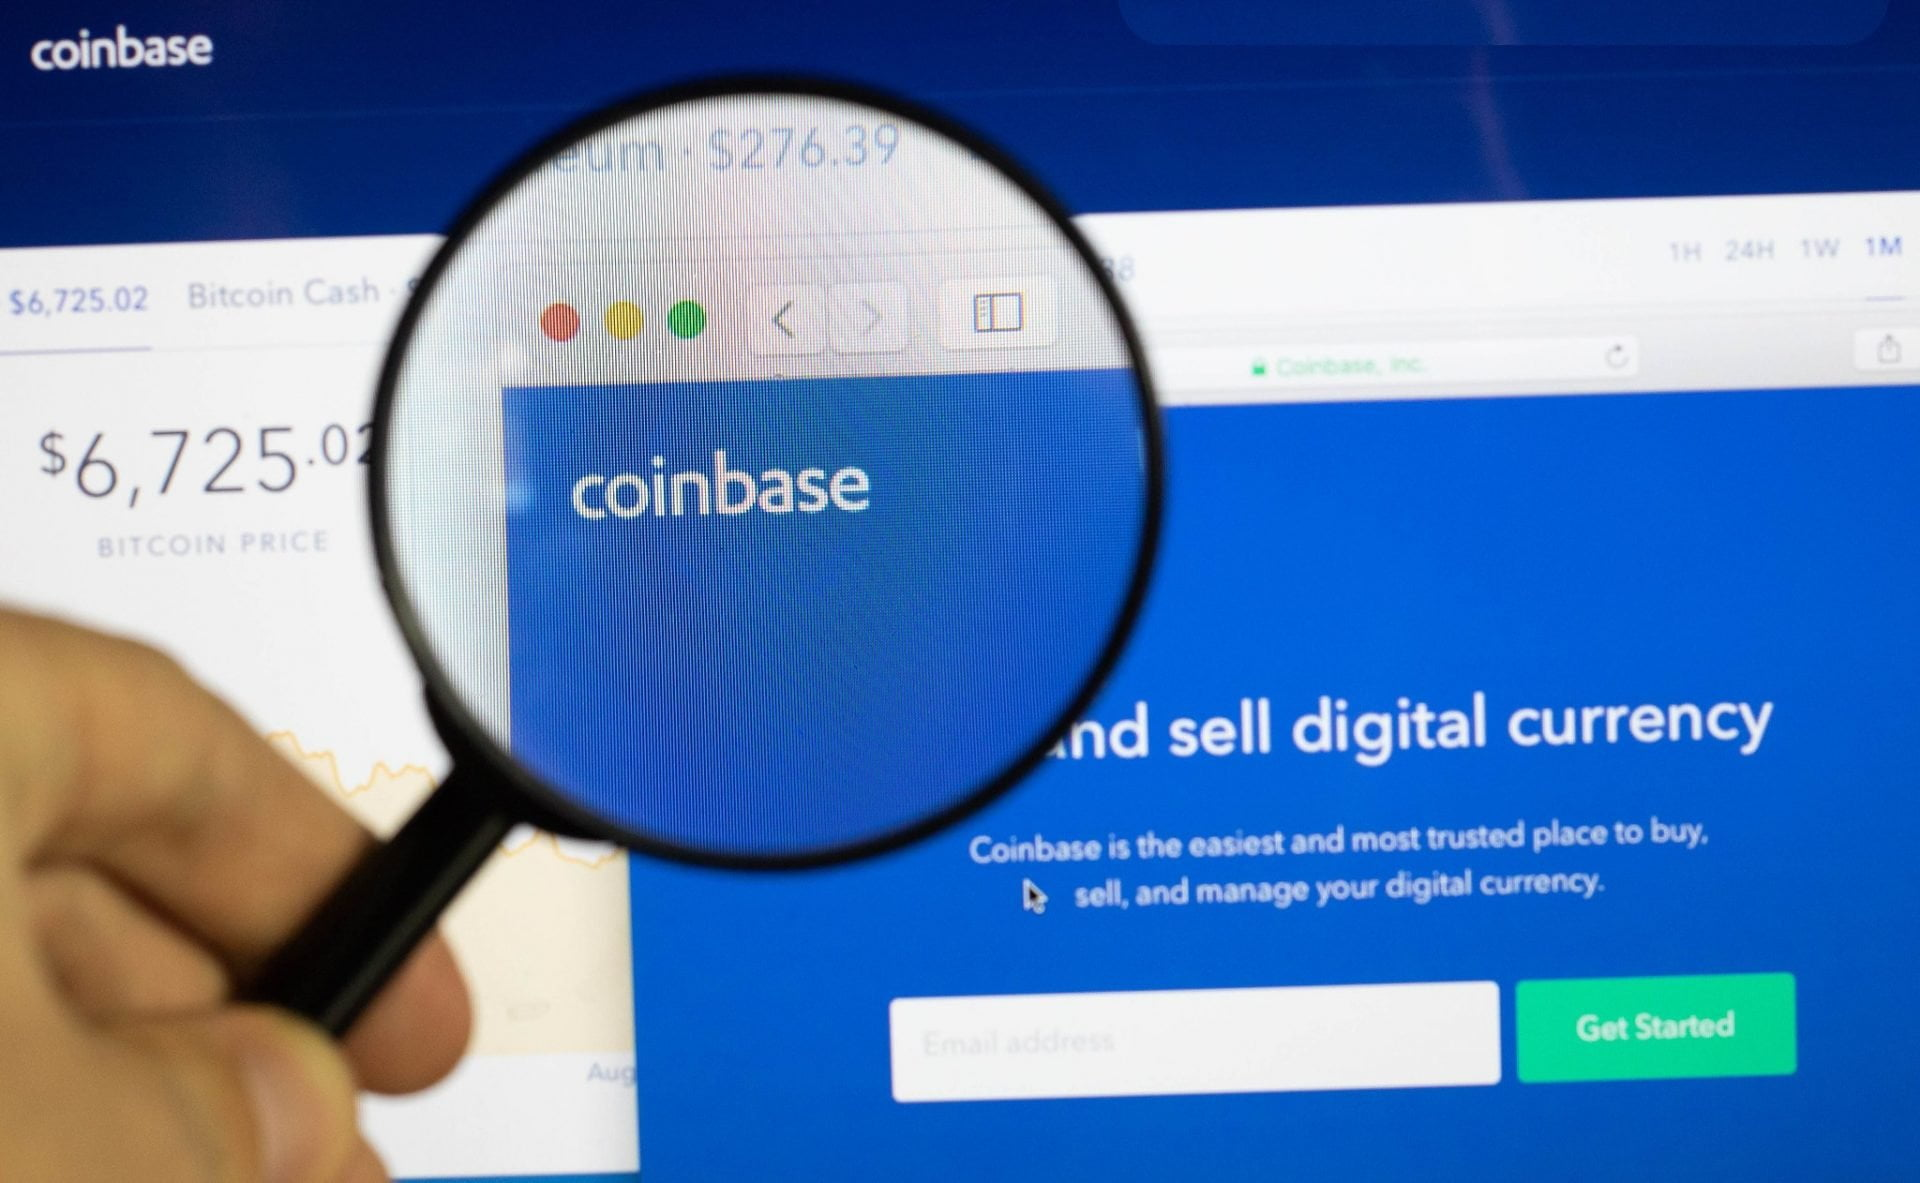 Coinbase to Add Swath of Crypto Assets: Algorand, Decred, Ontology, Others 18